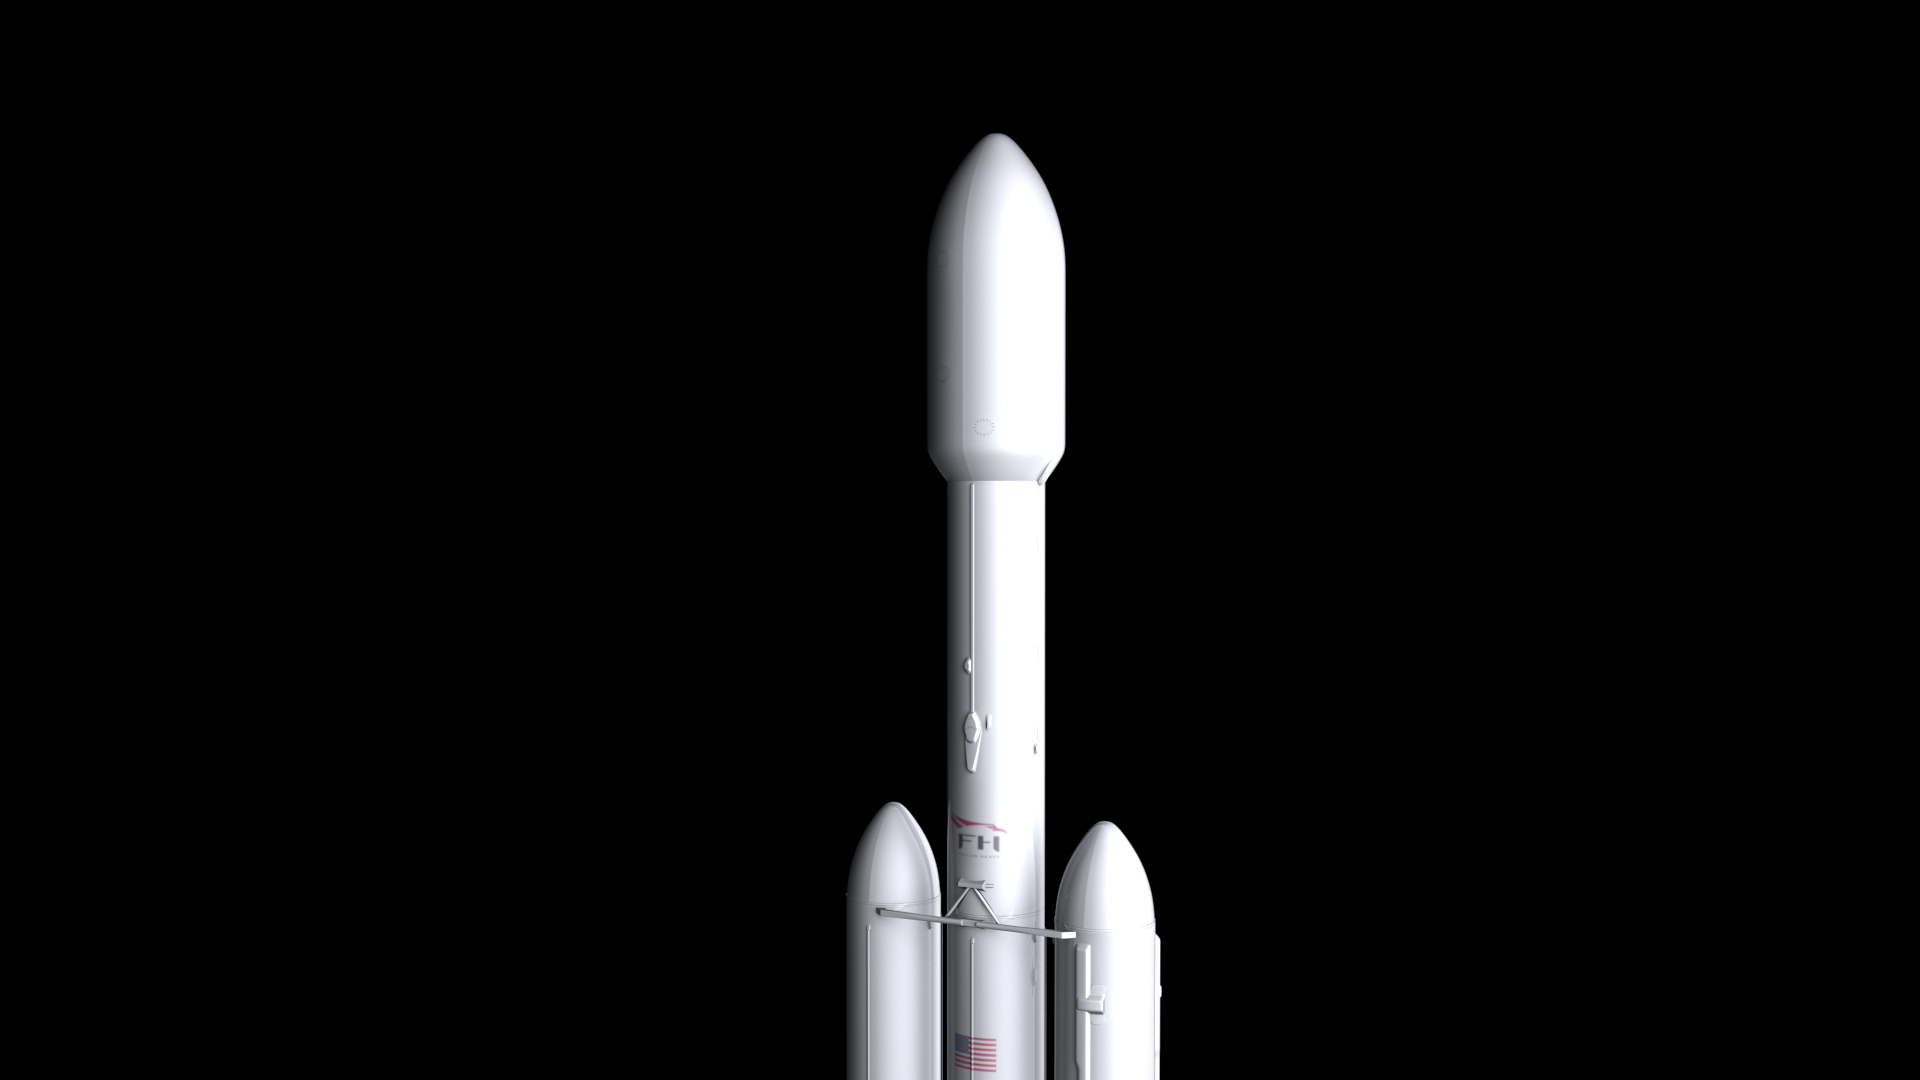 falcon heavy v1.2 non reusable 3d model max fbx c4d lwo ma mb hrc xsi obj 277889